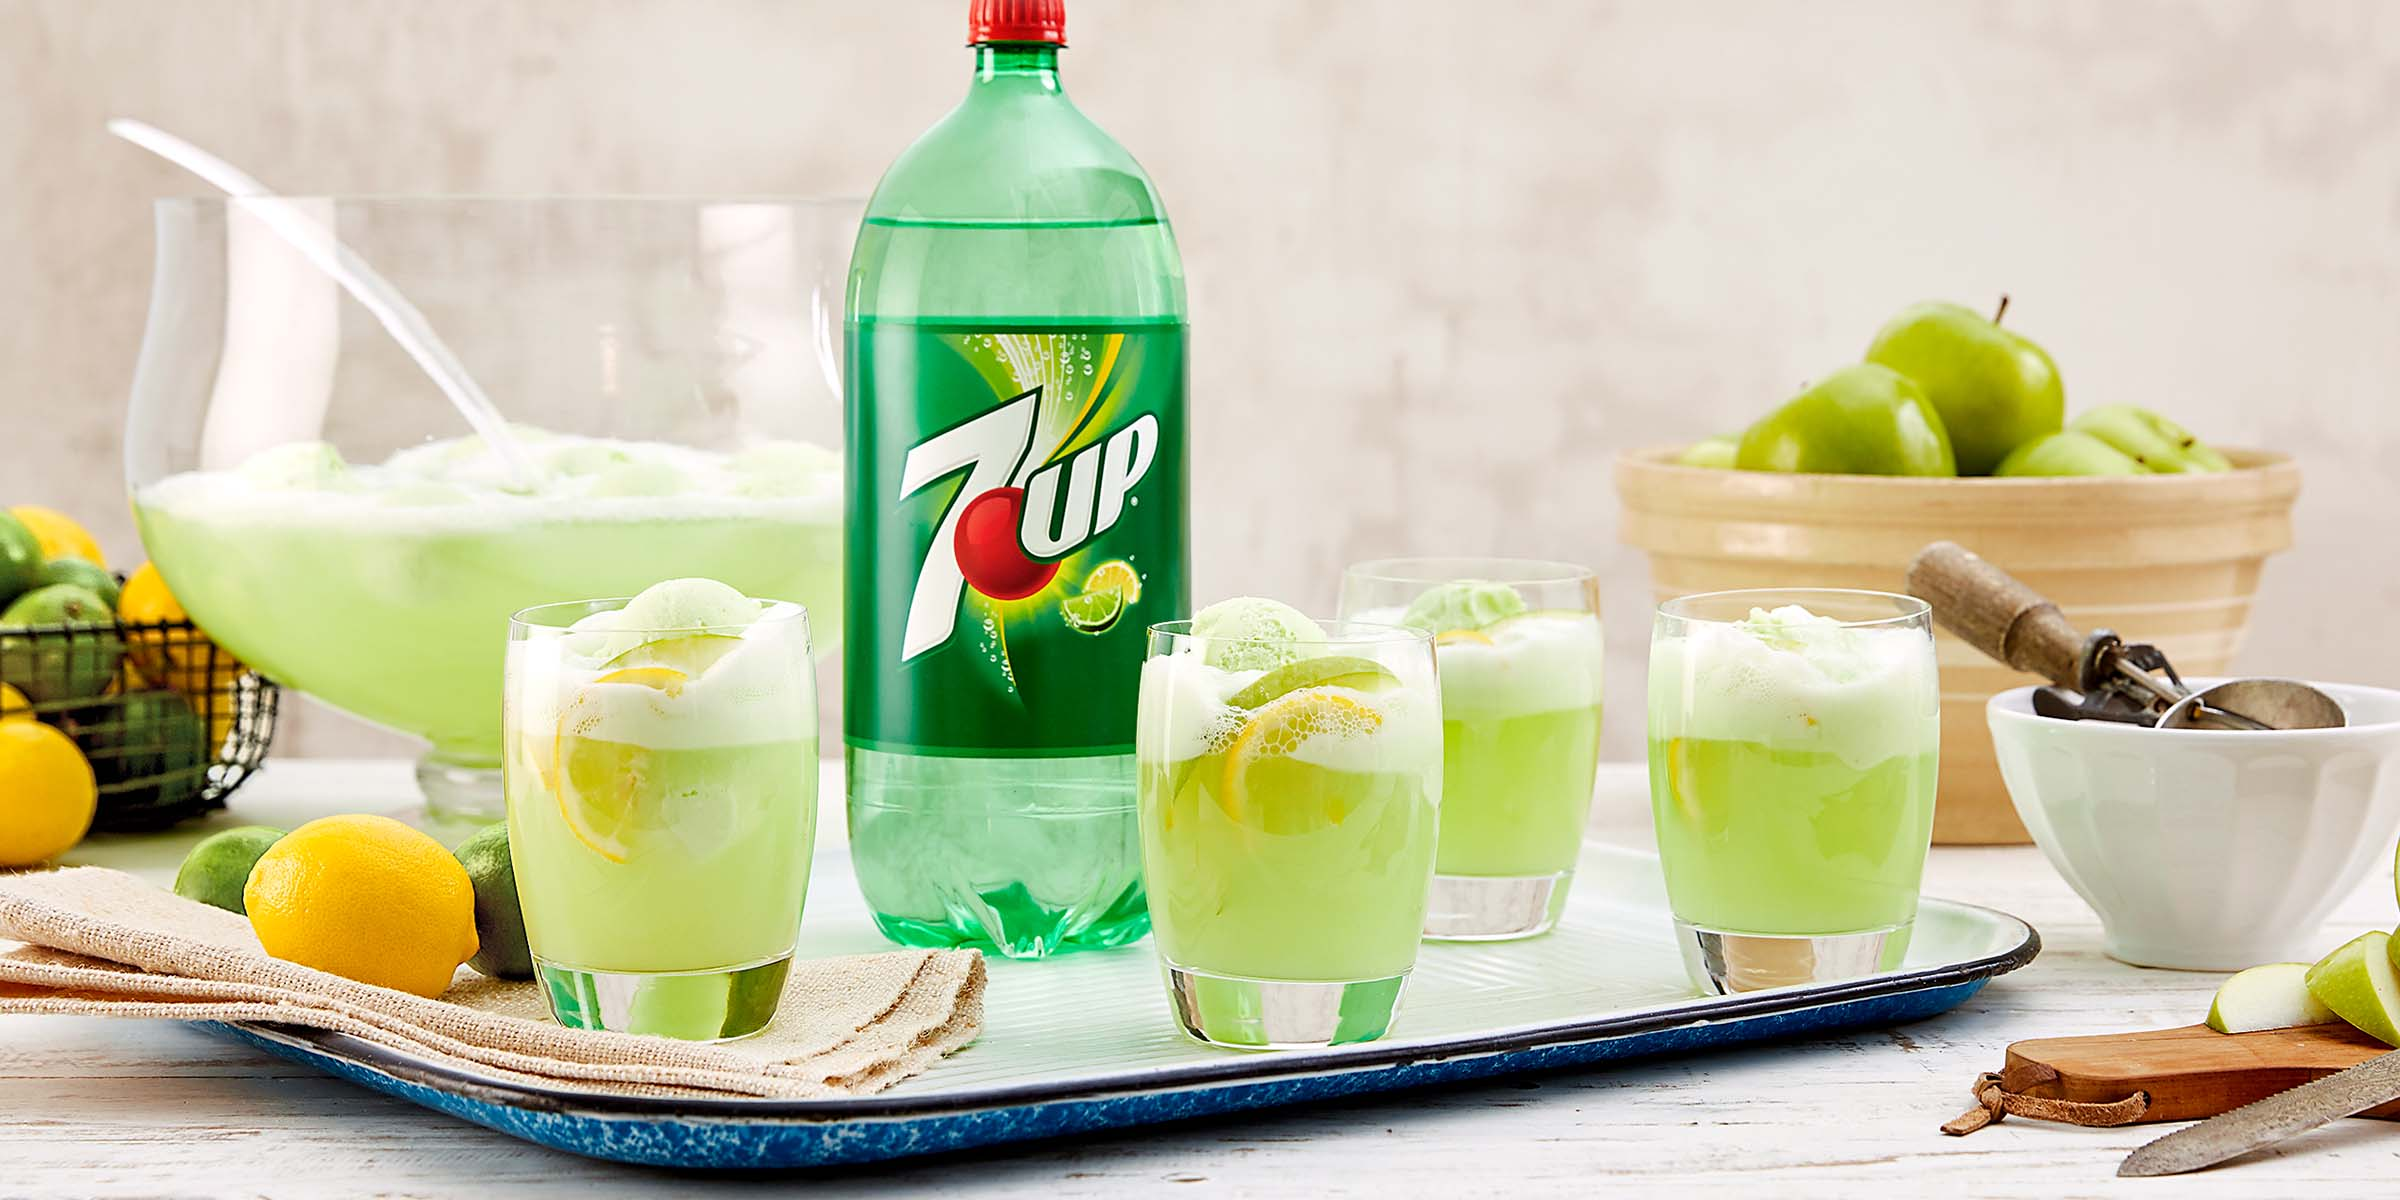 Punch recipes easy 7 up